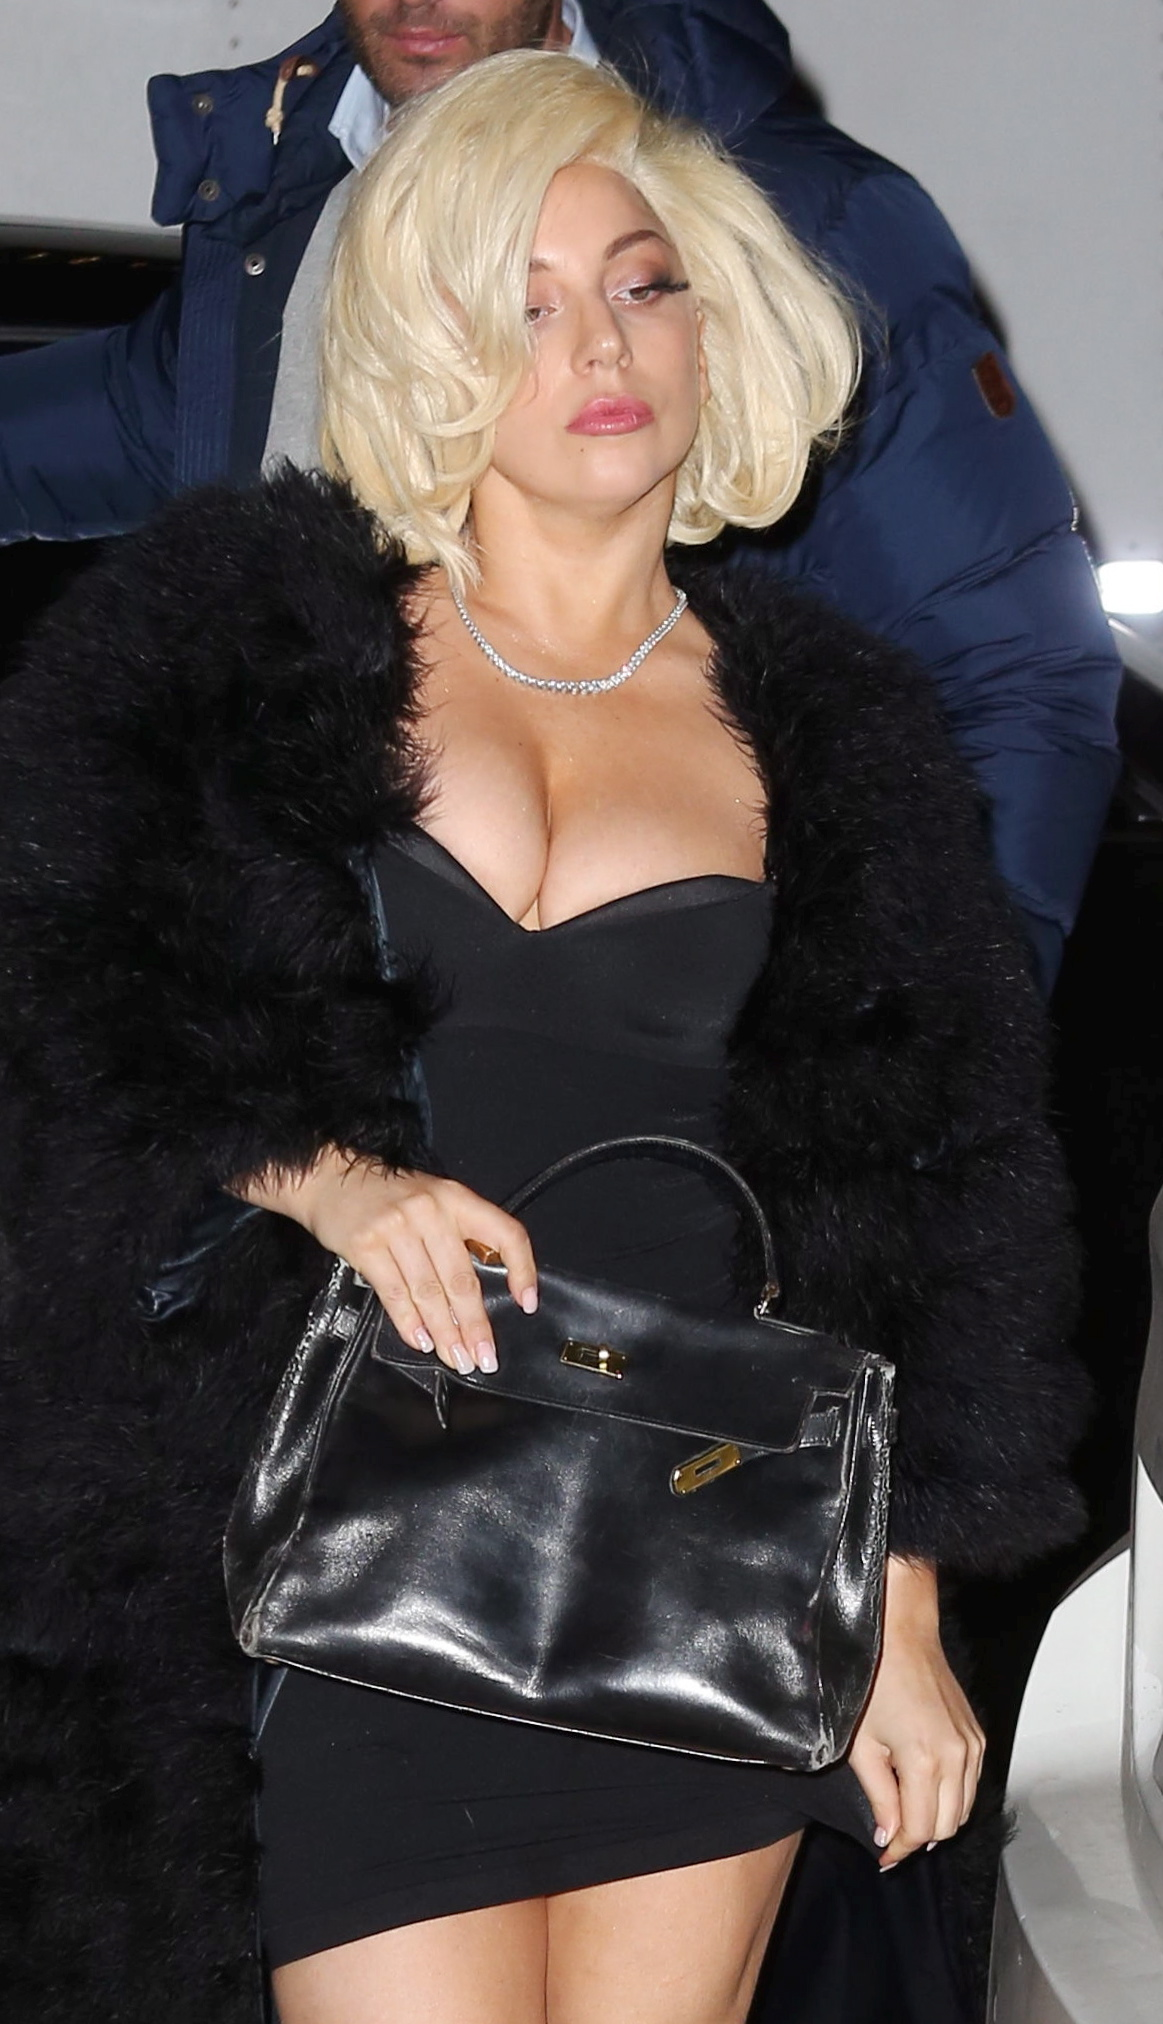 lady-gaga-in-a-short-dress-and-deep-cleavage-6.jpg